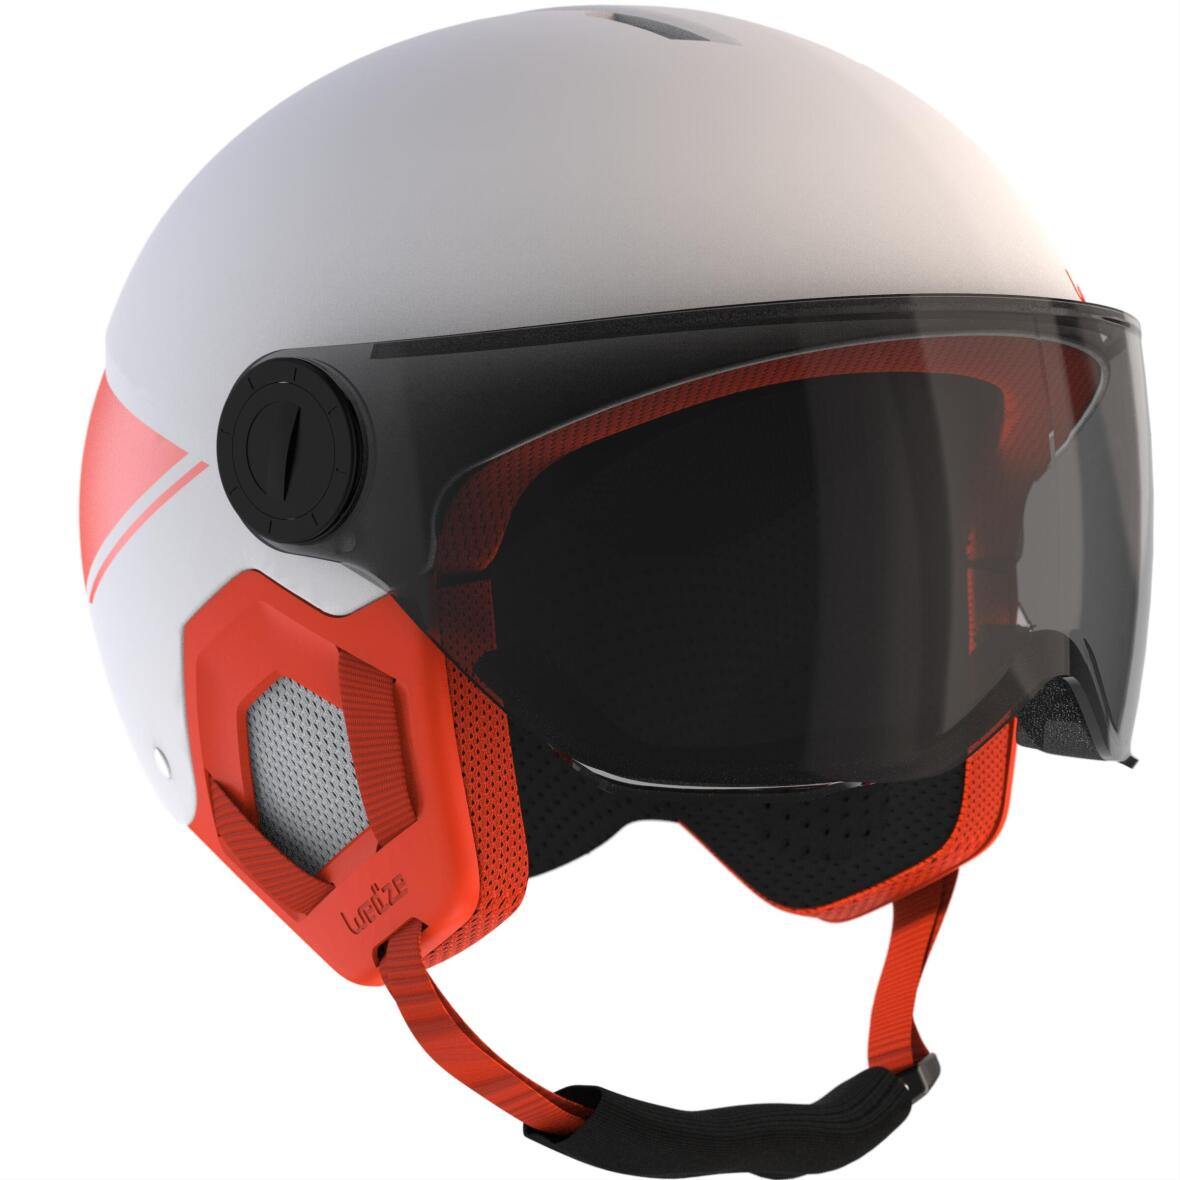 piste skiing goggles and helmet